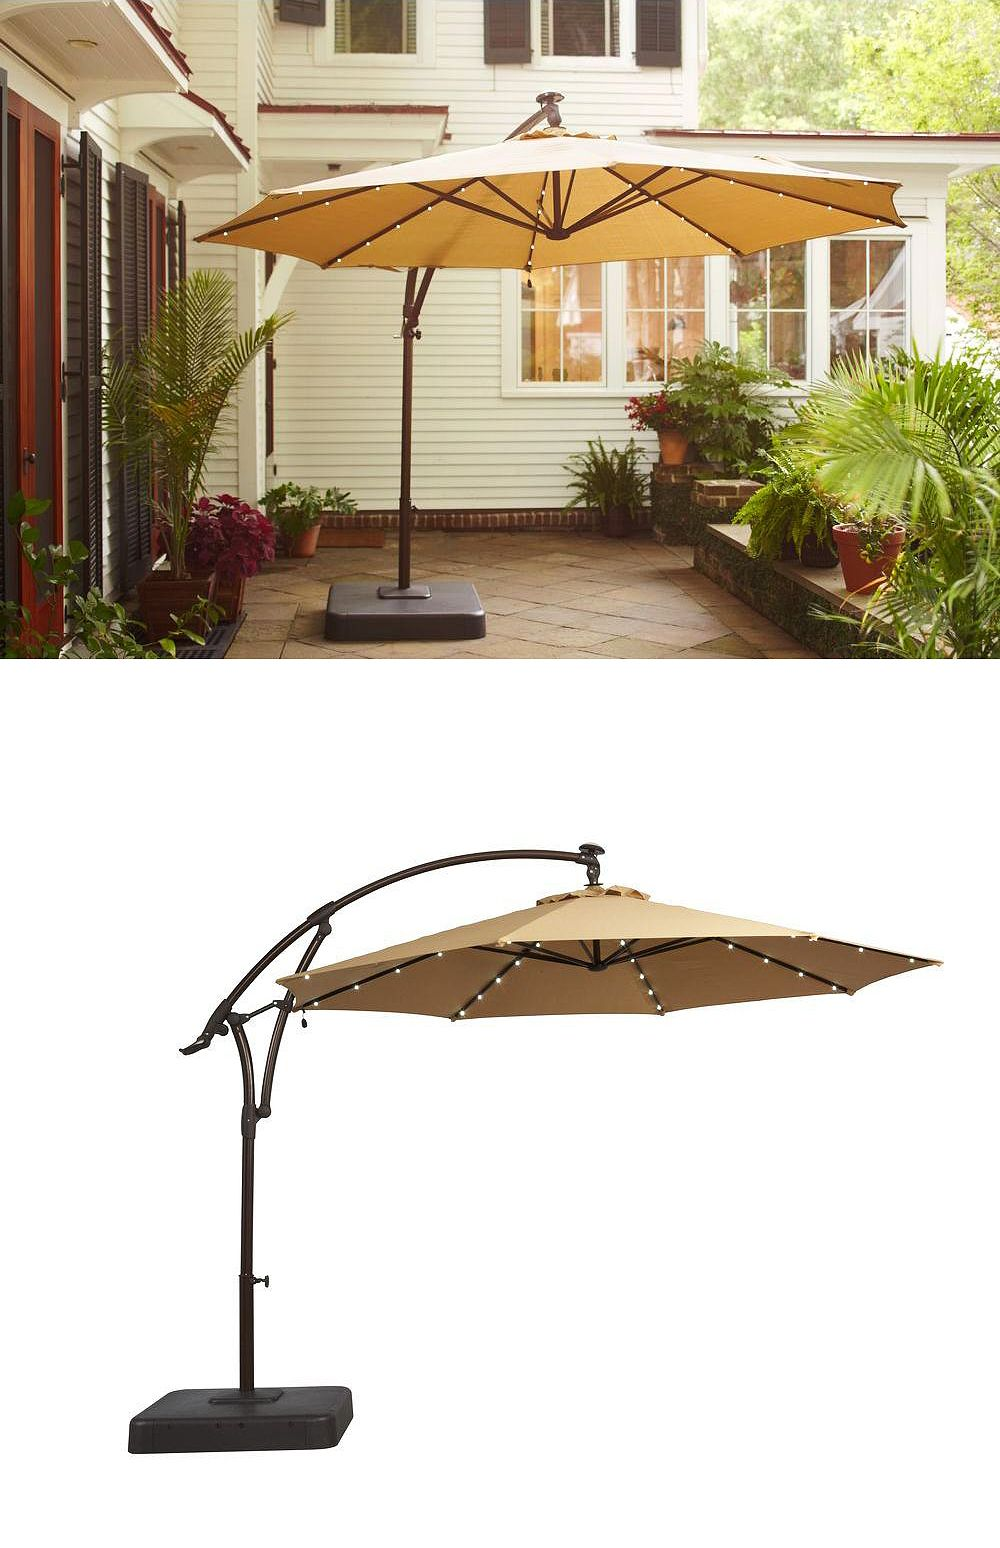 there something special about this patio umbrella has small spring haven accent table solar powered led lights embedded provide gentle glow night pineapple cutter garden supplies